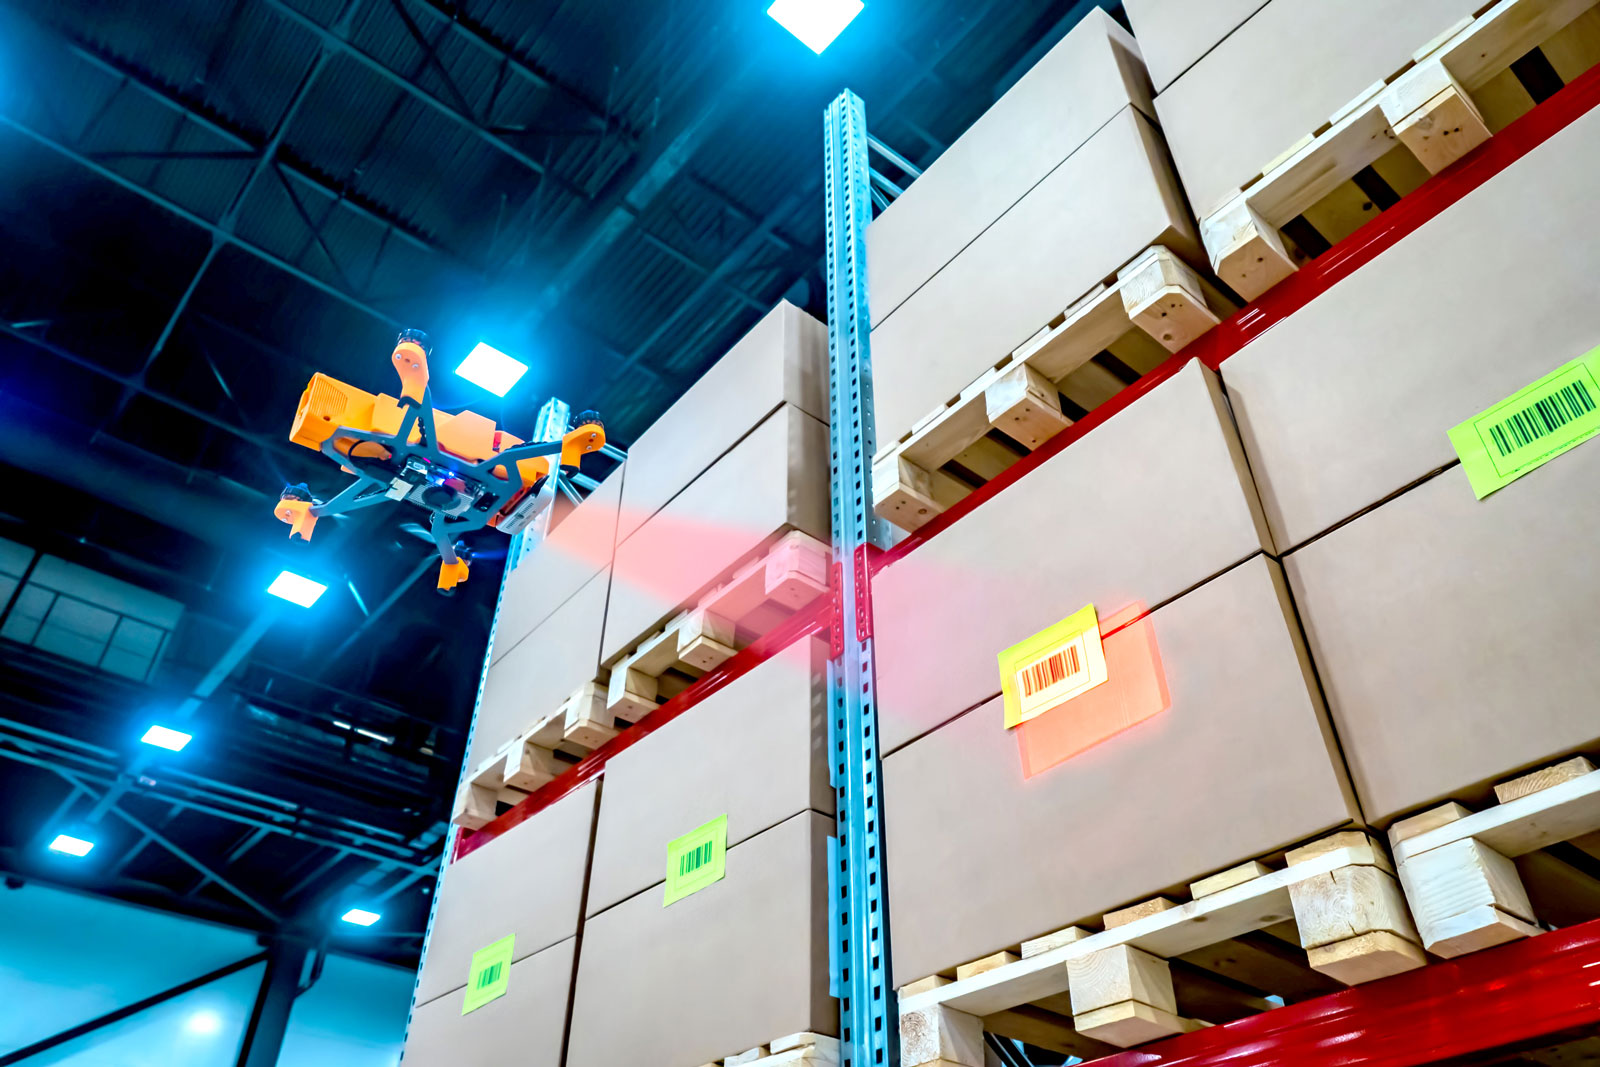 warehouse drone scanning barcode